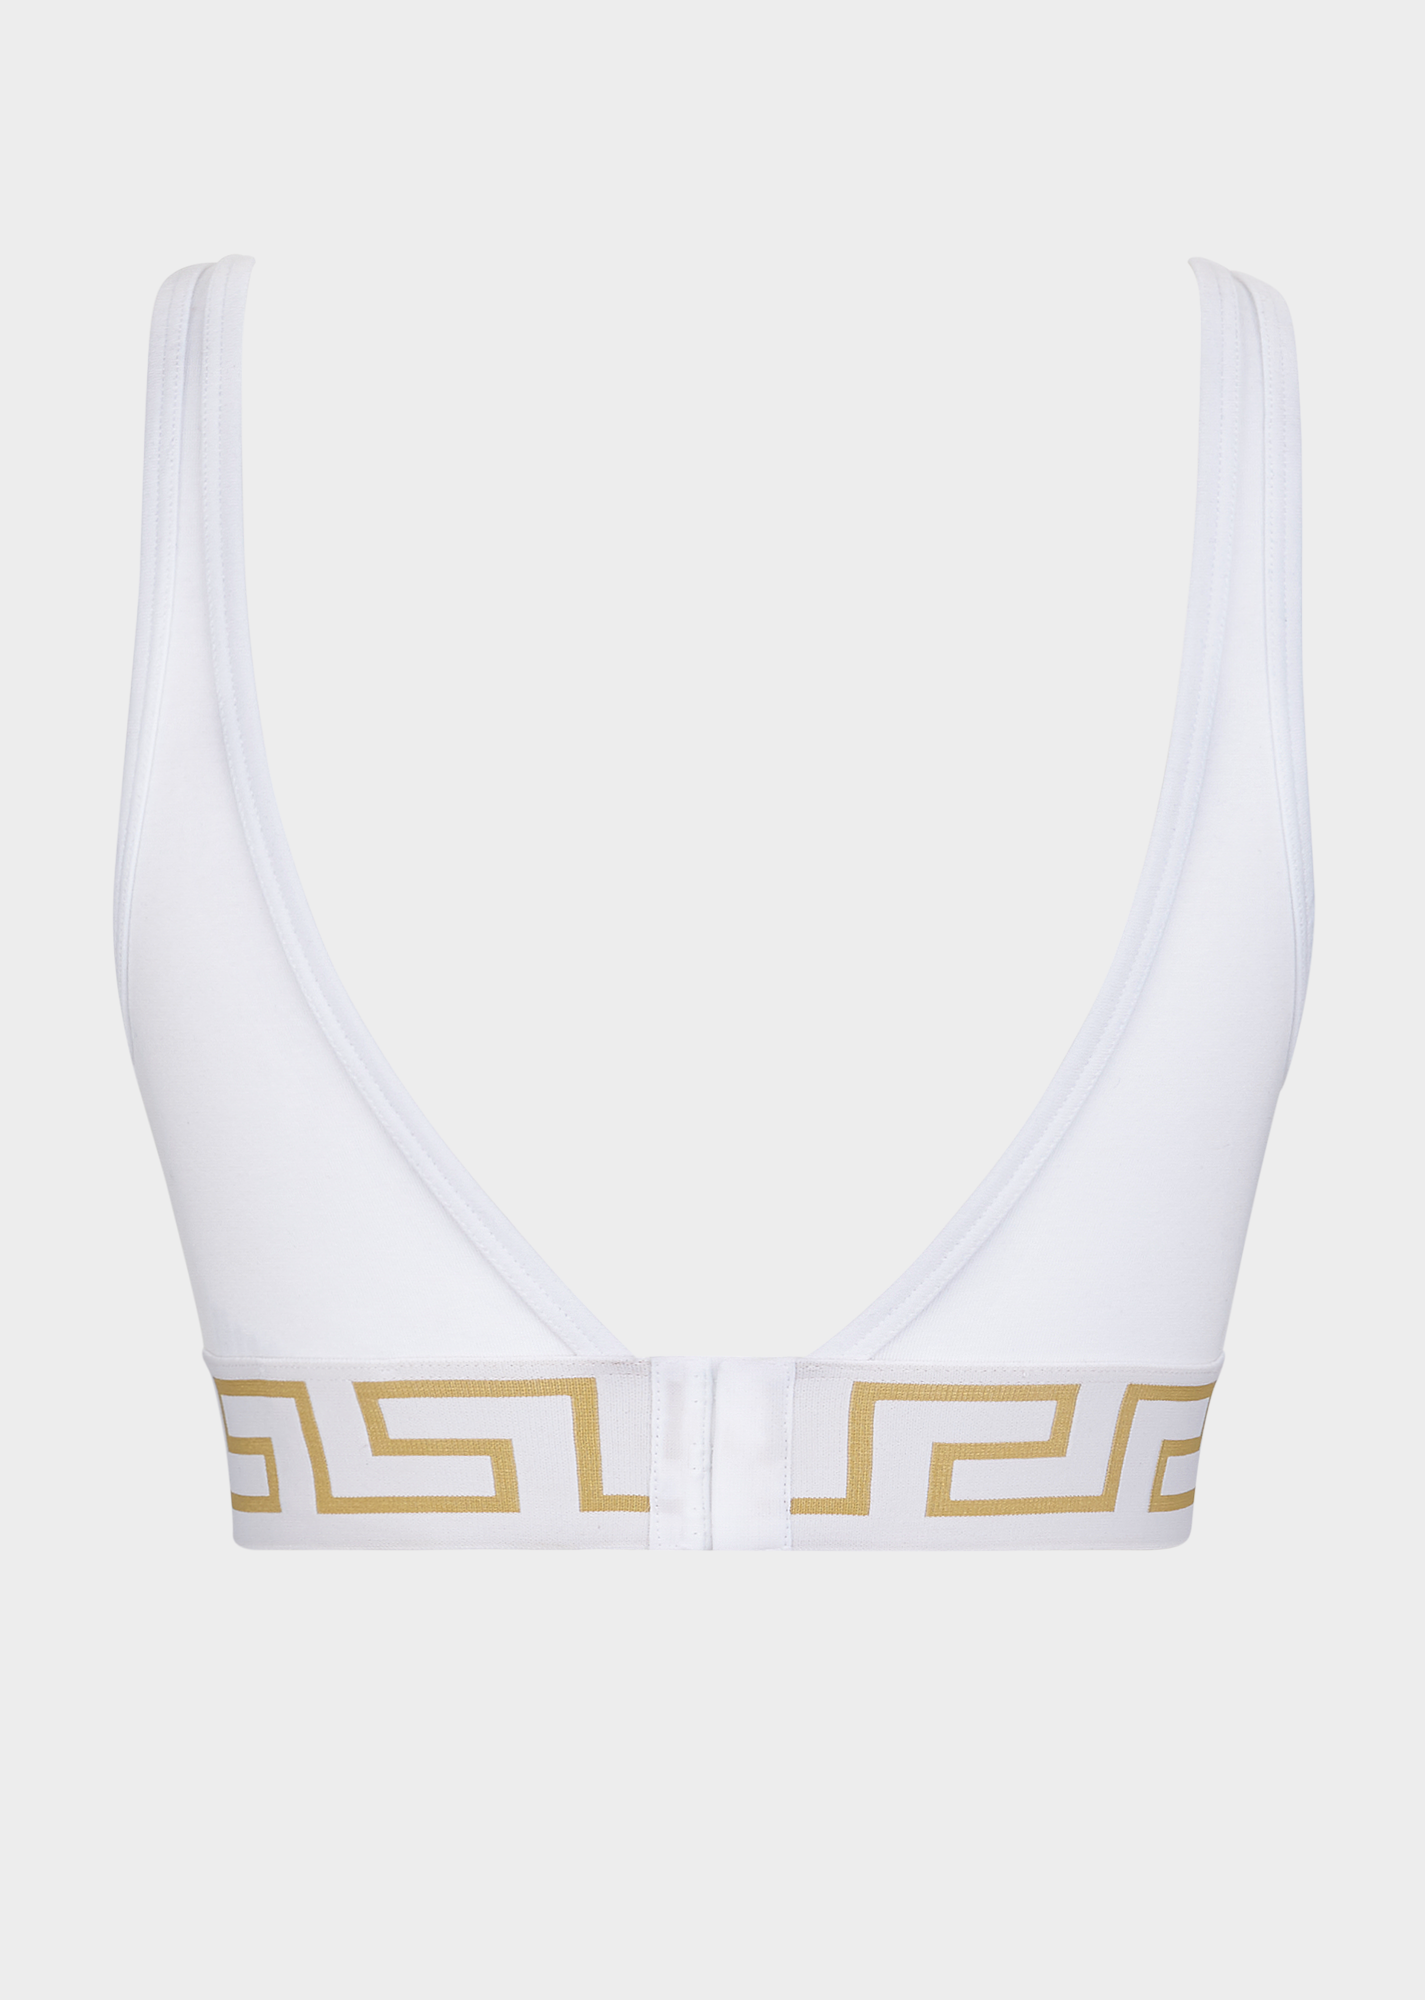 27aaeb5fd1fd91 Versace Greca Border Stretch Cotton Bralette In White